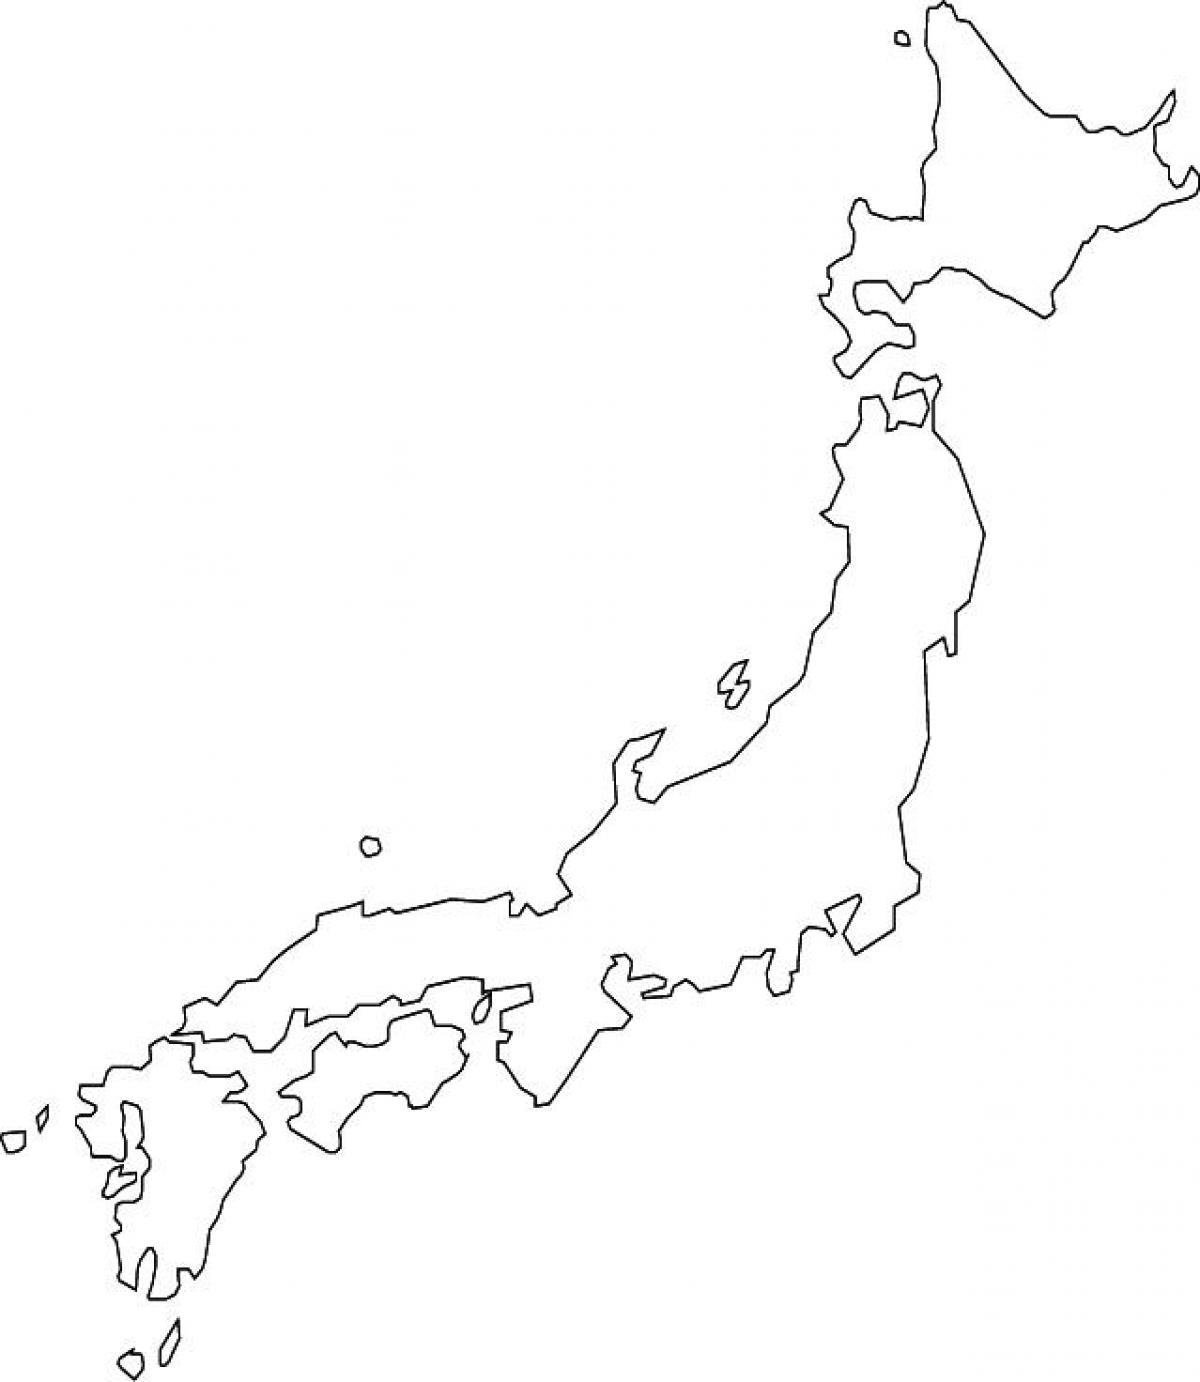 Japan map blank - Map of japan blank (Eastern Asia - Asia)